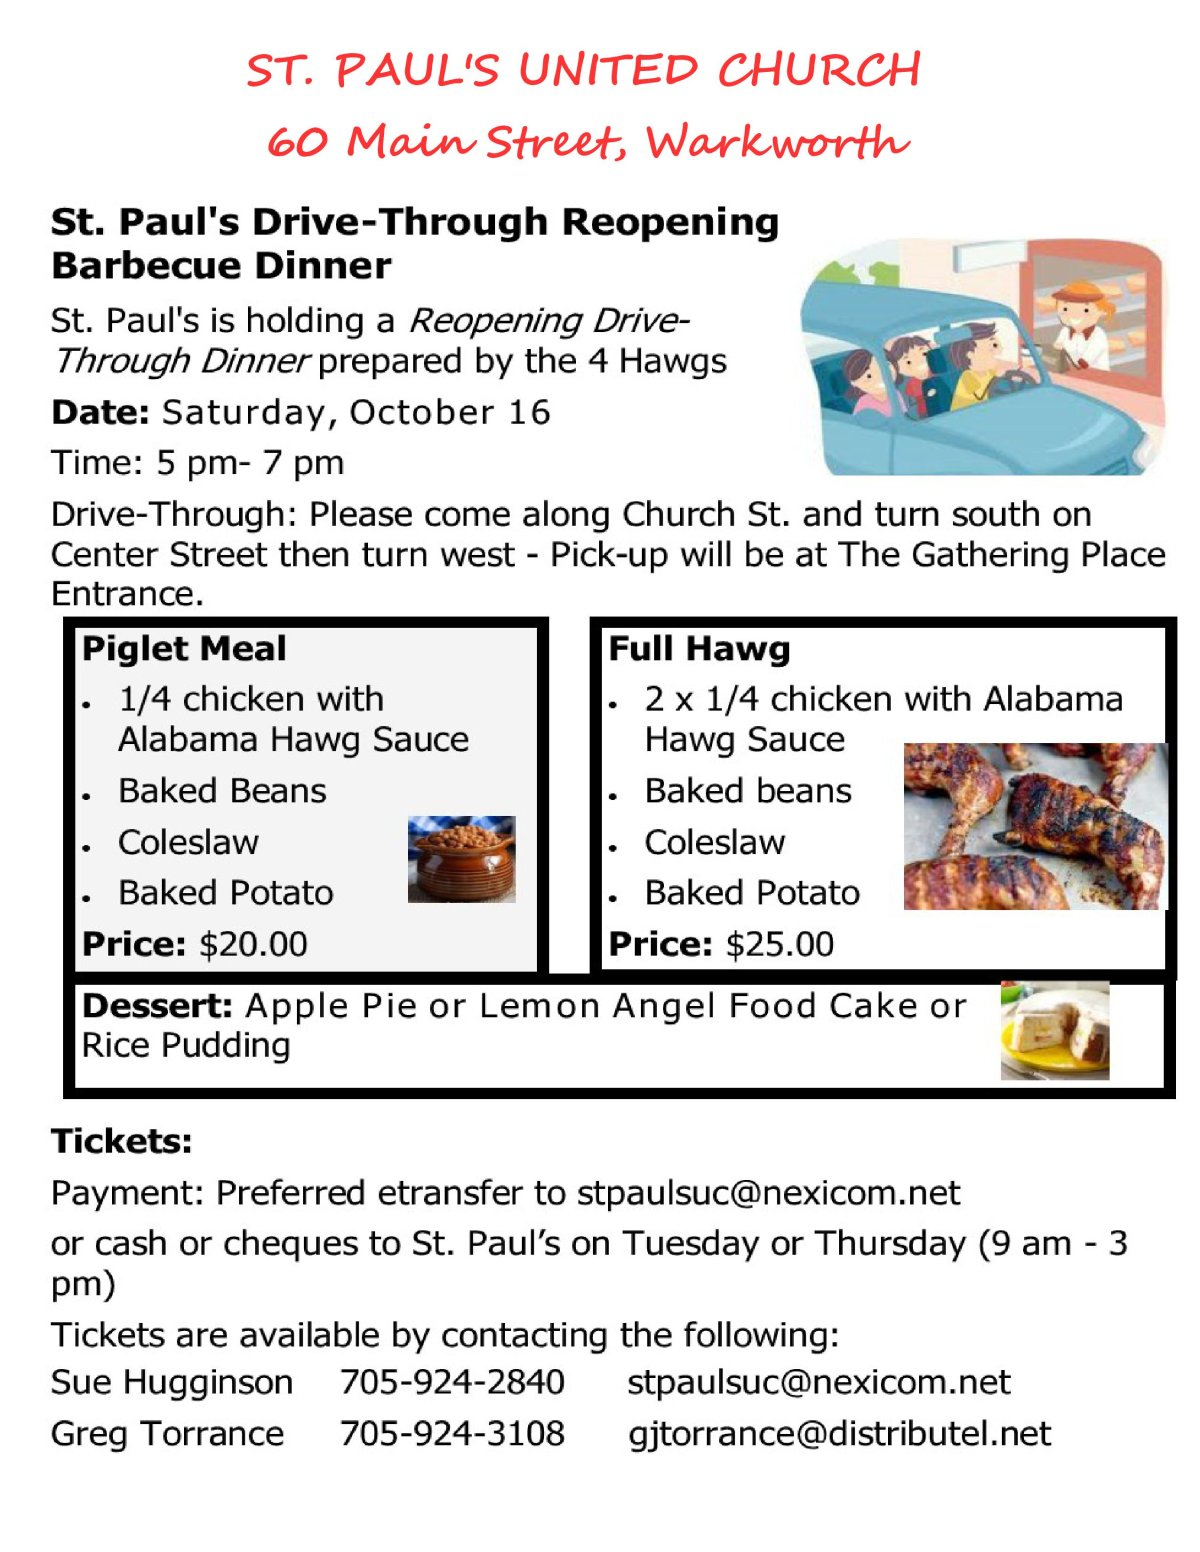 St. Paul's Drive-Through Reopening Barbeque Dinner - image